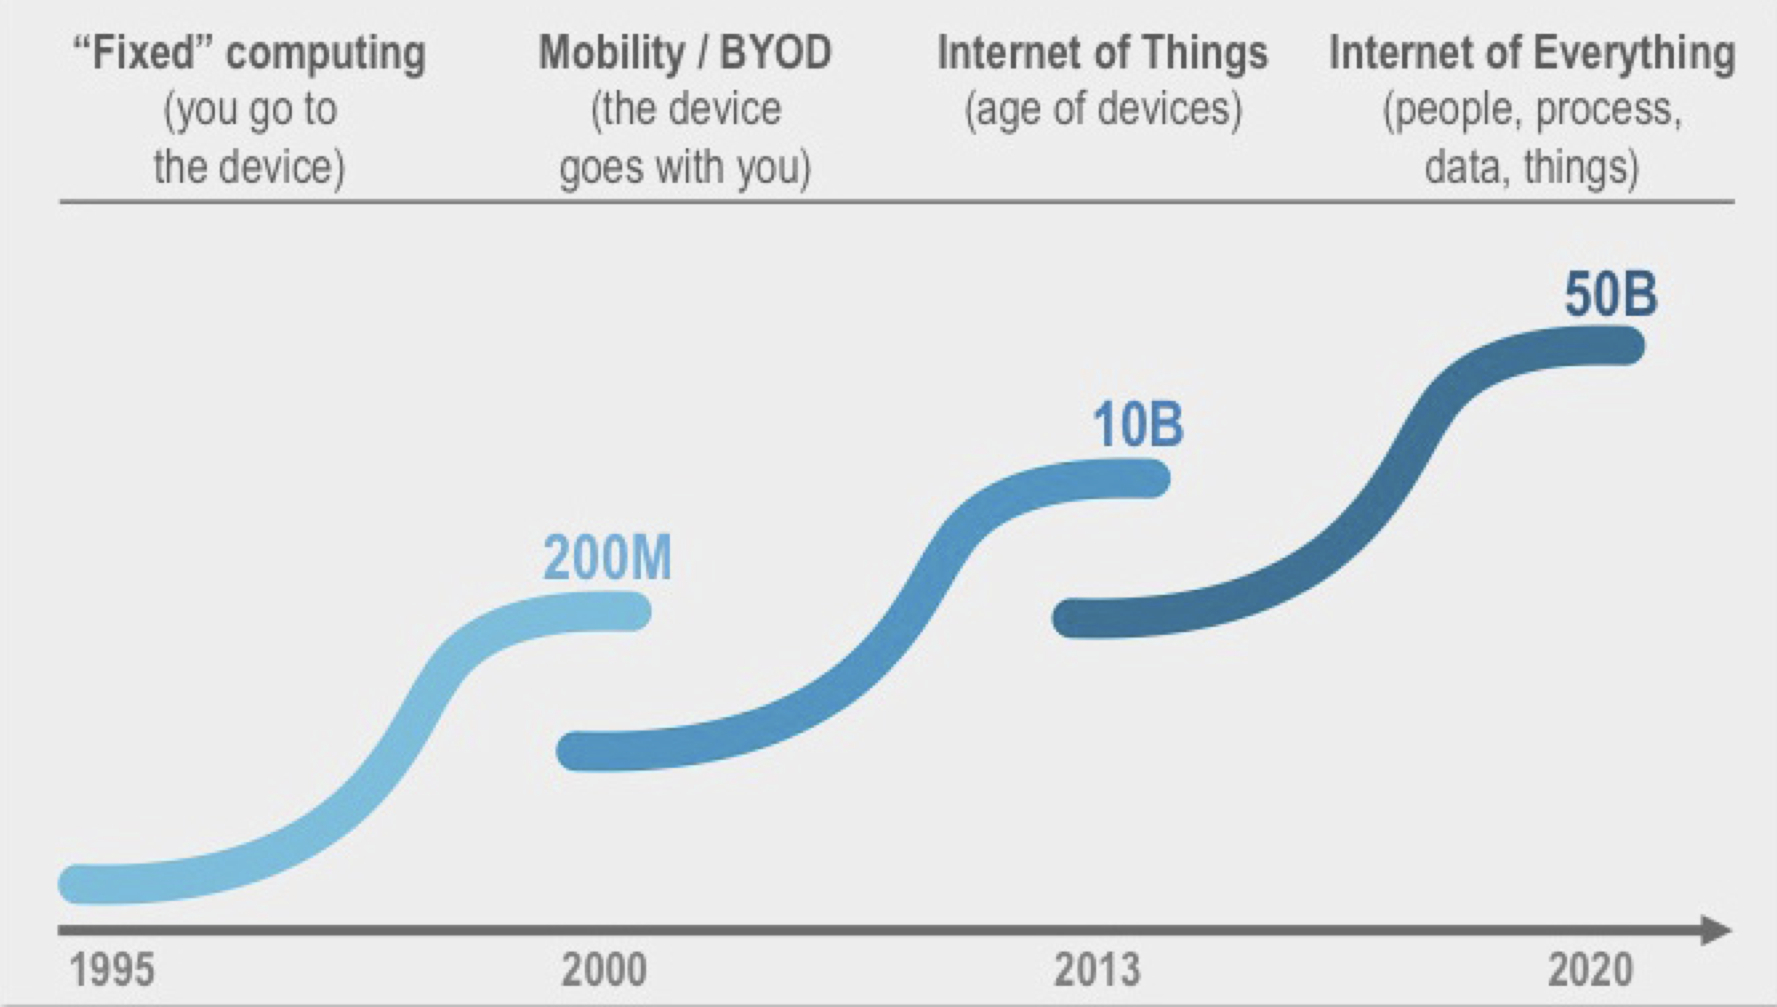 Number of Devices on the Internet